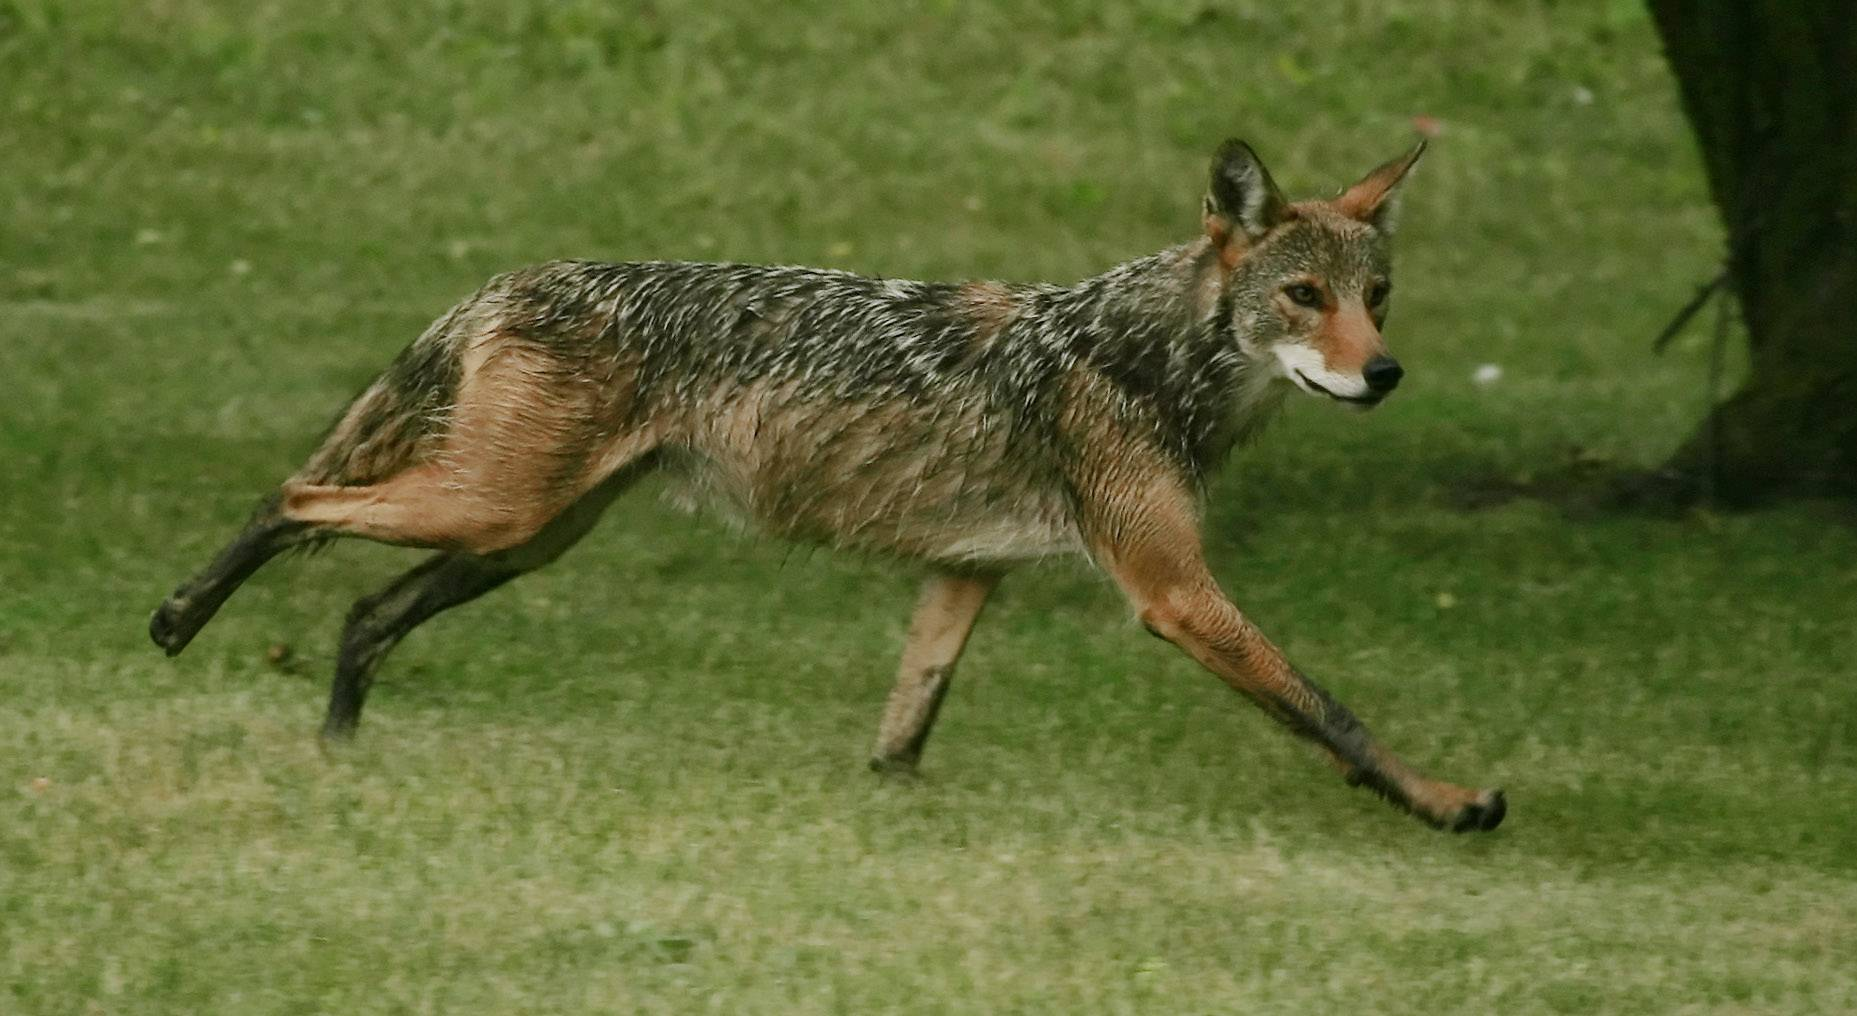 One dog was killed and another injured in a coyote attack that happened while the canines were unattended in the backyard of a home near Deer Grove Forest Preserve, Palatine police said.